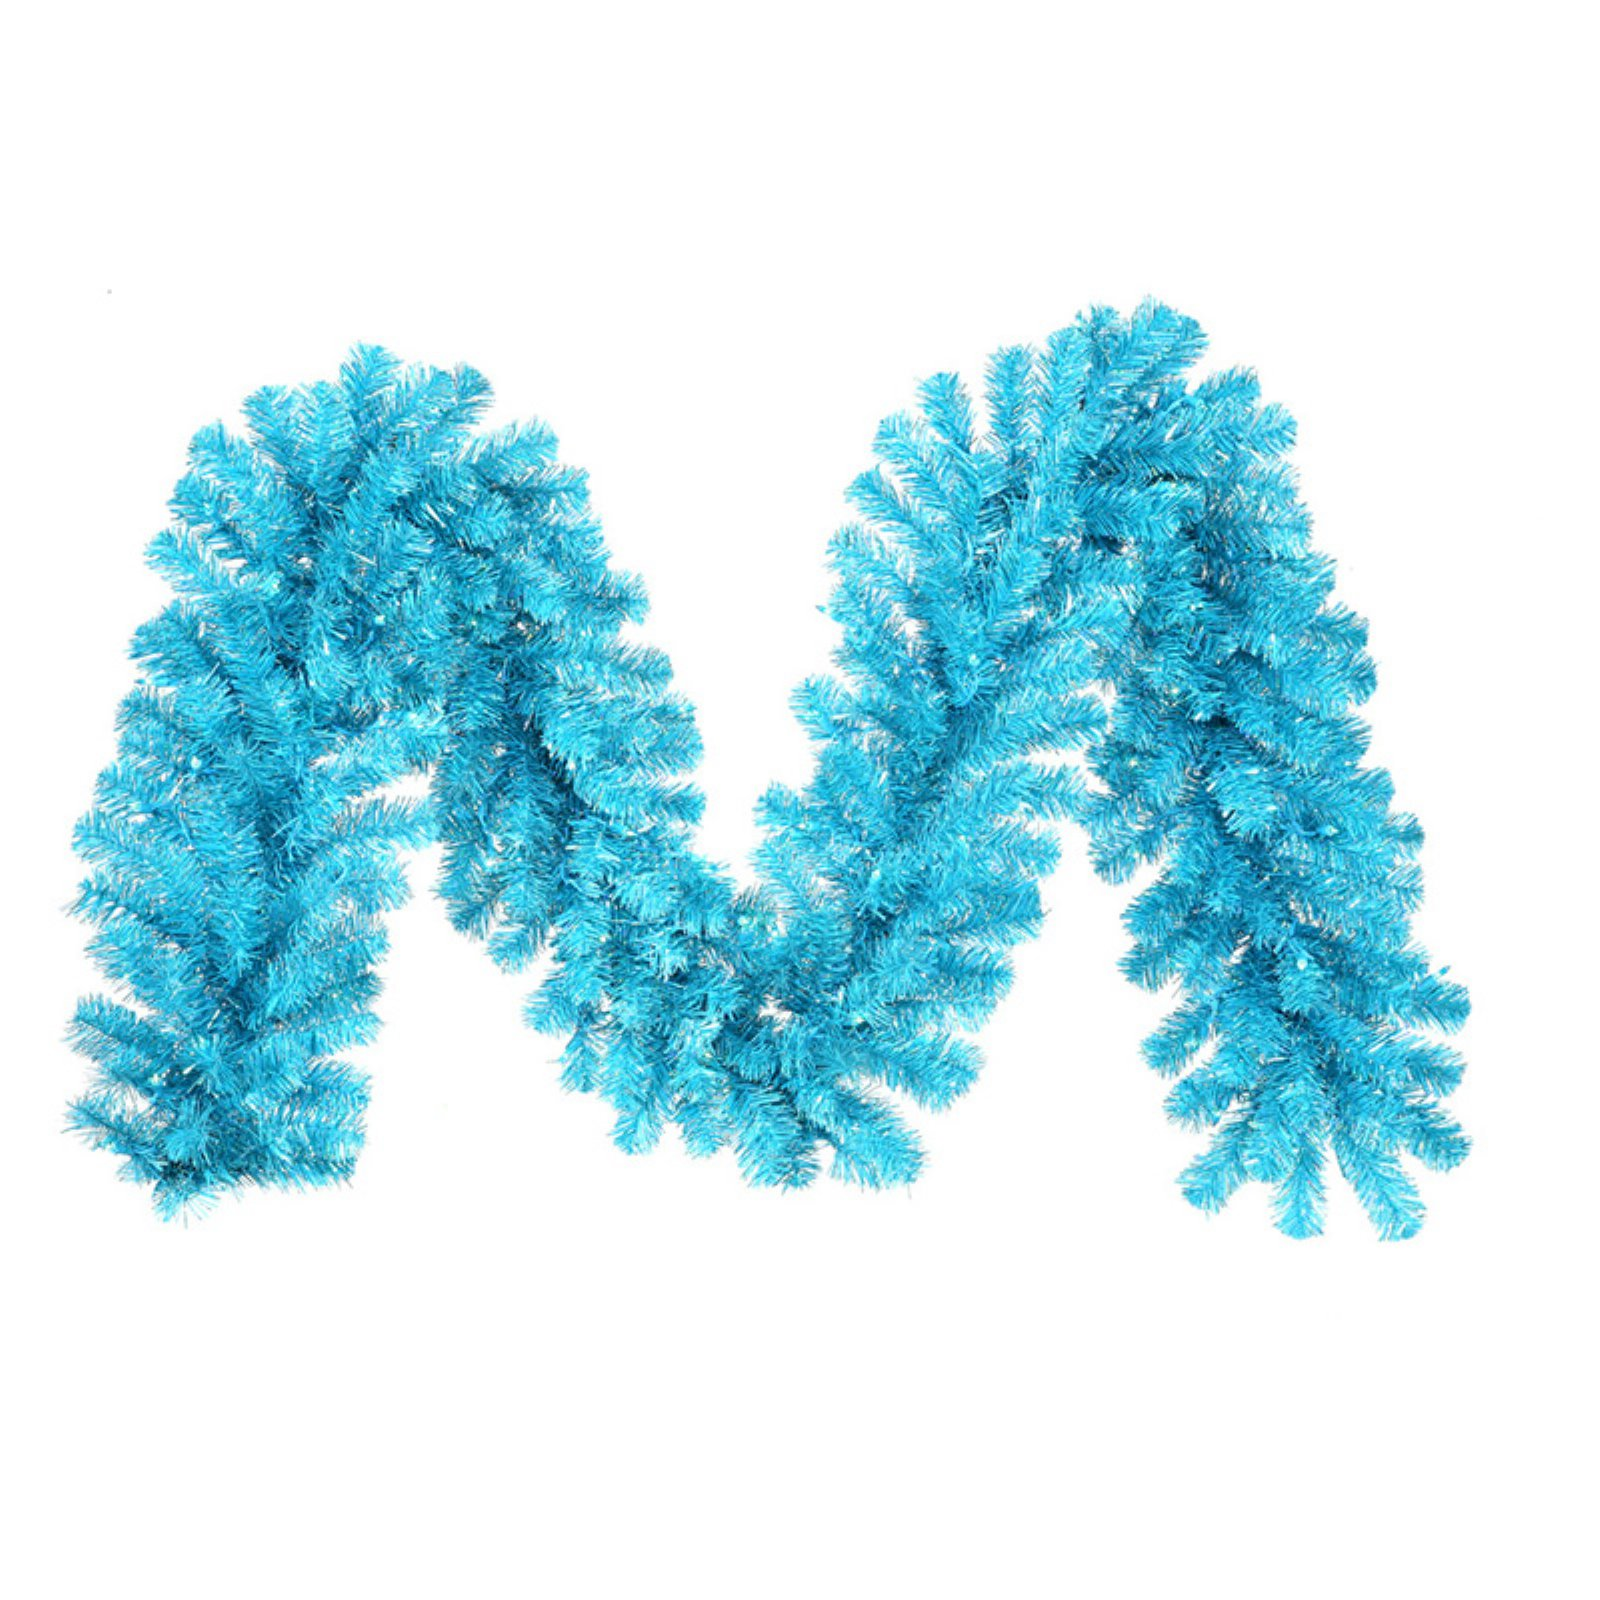 Vickerman 9' Sky Blue Artificial Christmas Garland with 70 Teal Lights